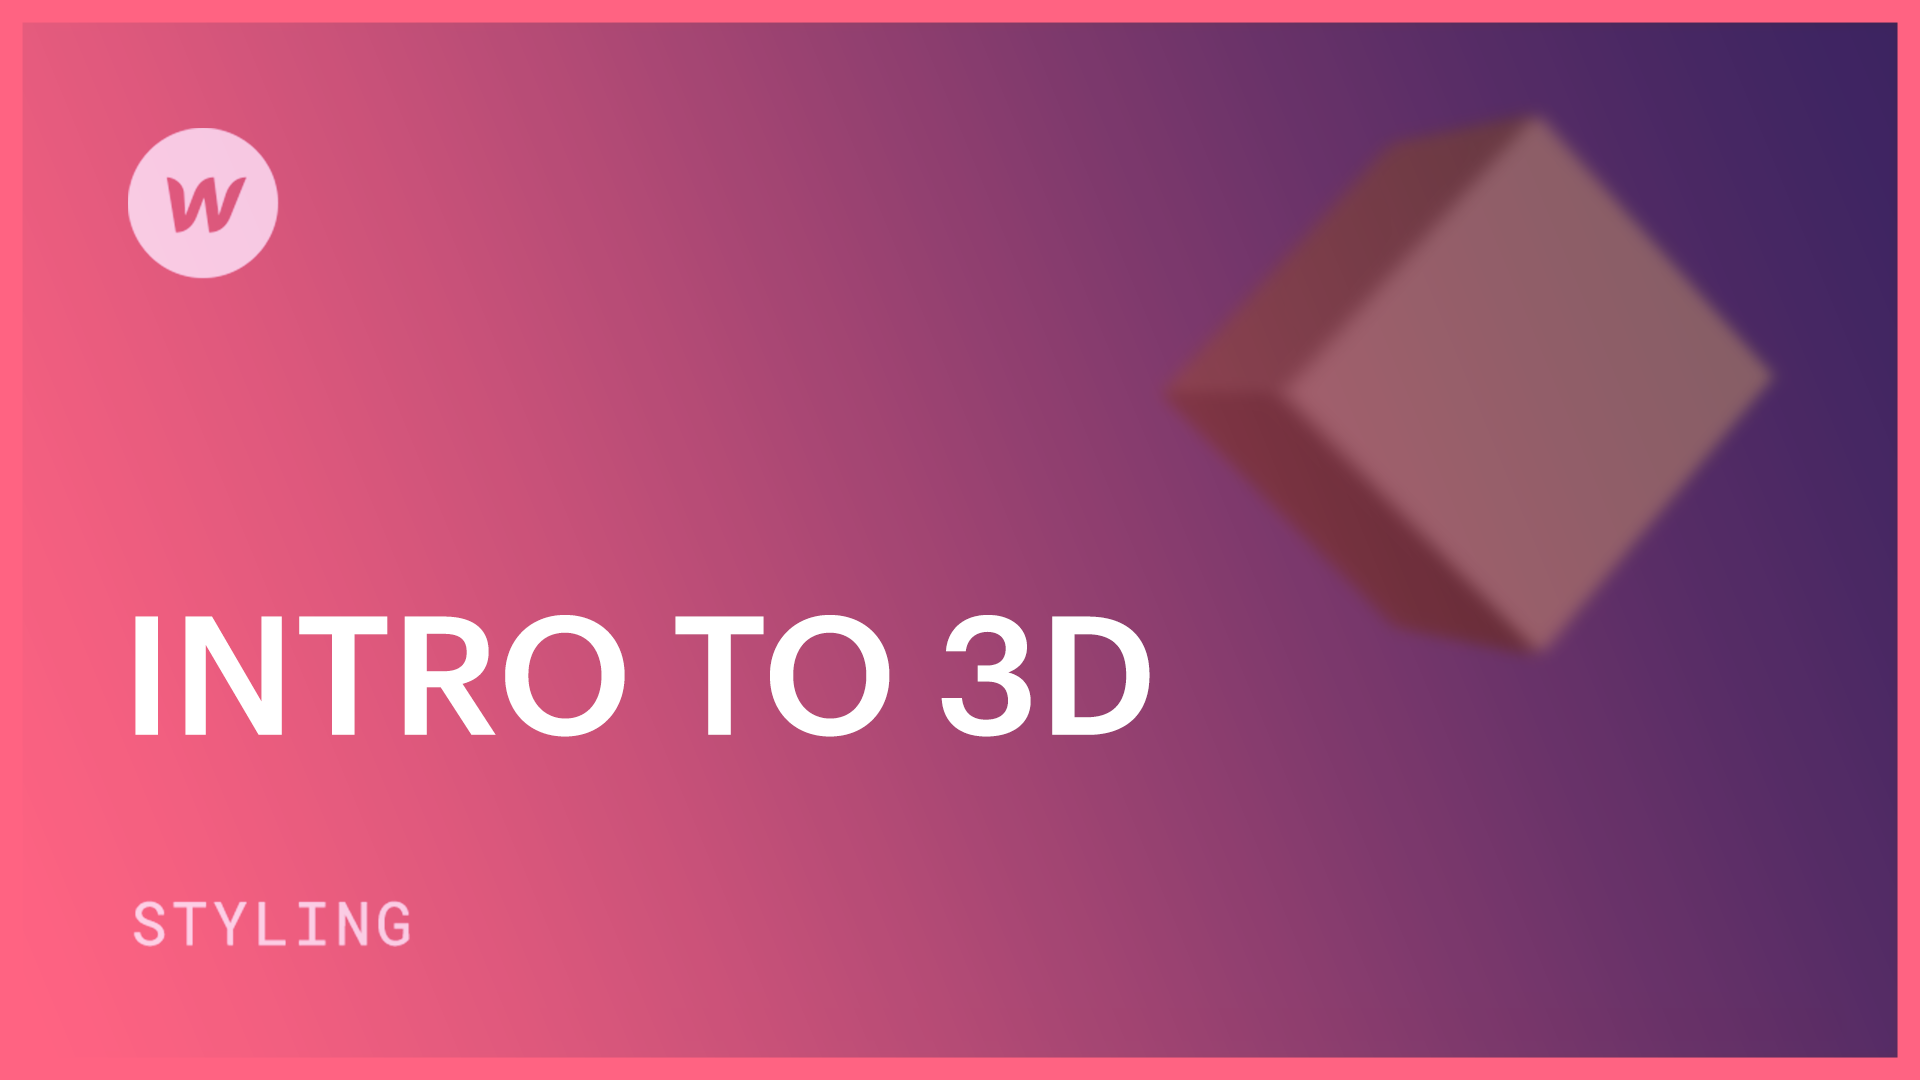 Intro to 3D